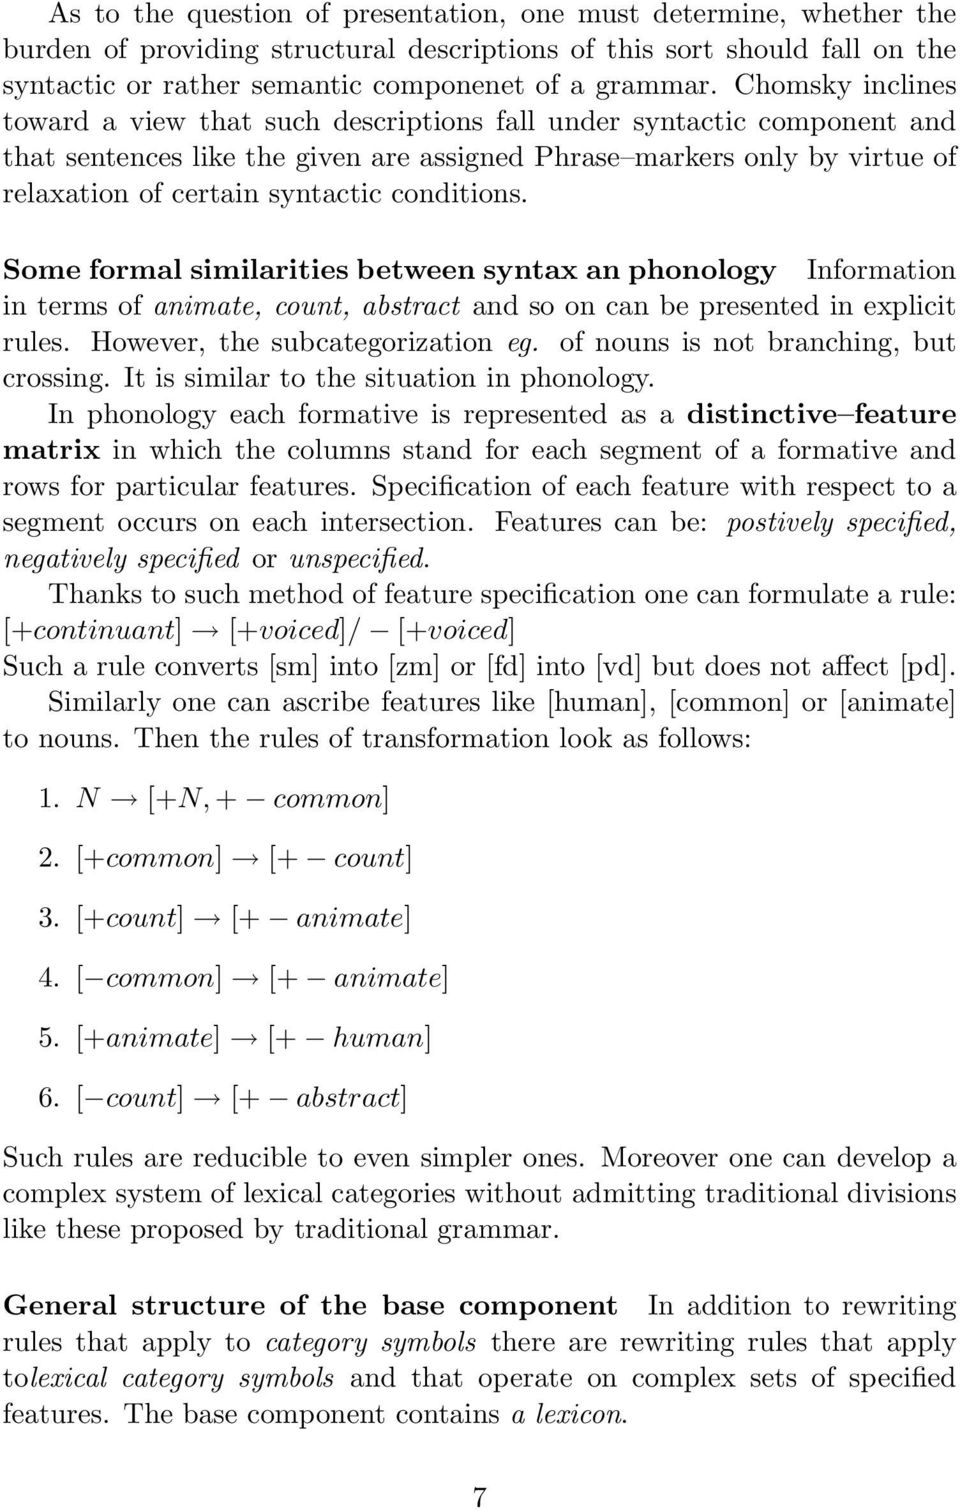 conditions. Some formal similarities between syntax an phonology Information in terms of animate, count, abstract and so on can be presented in explicit rules. However, the subcategorization eg.